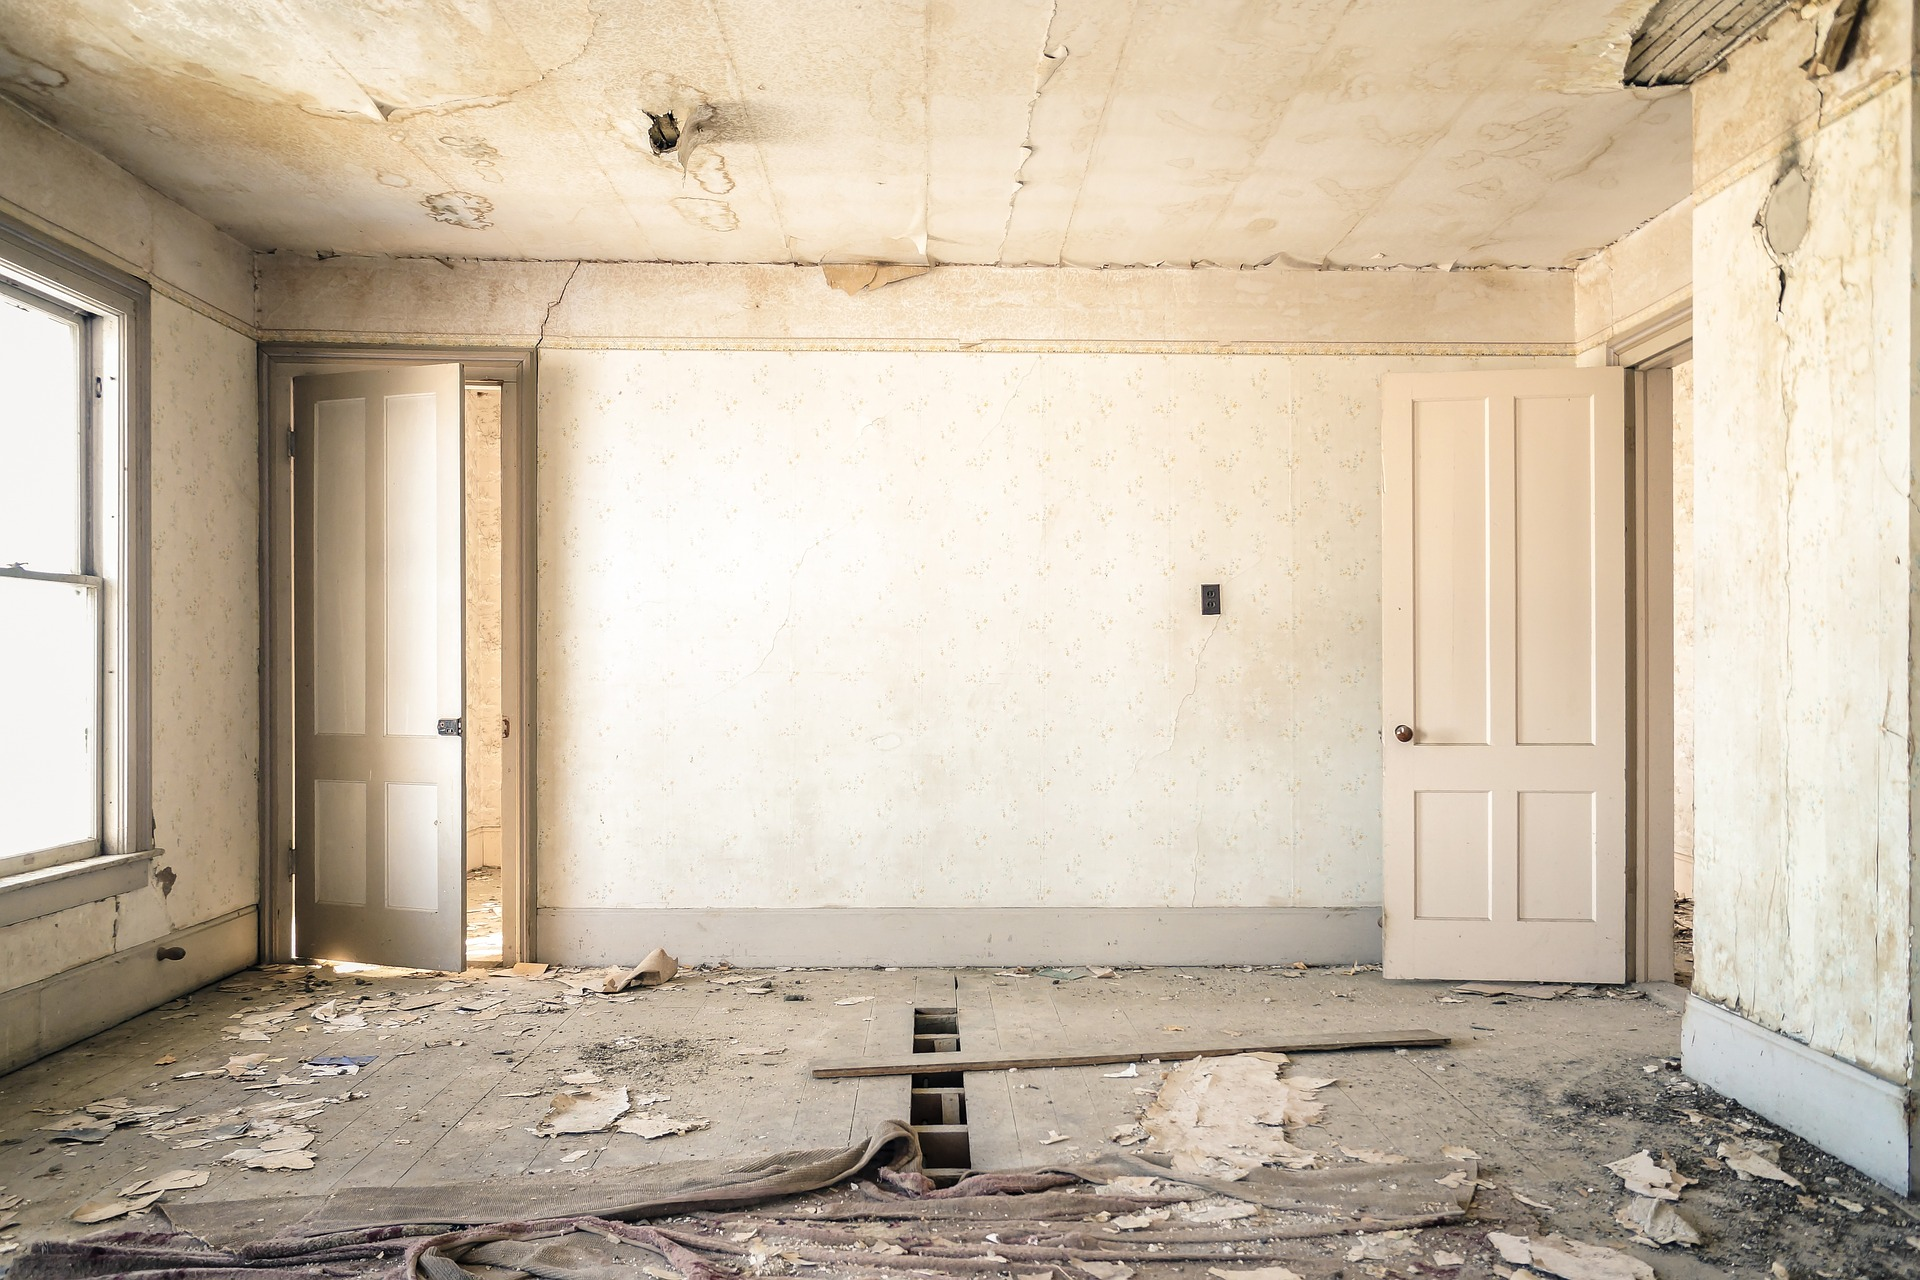 The Ultimate Guide To Renovating A House in 2019